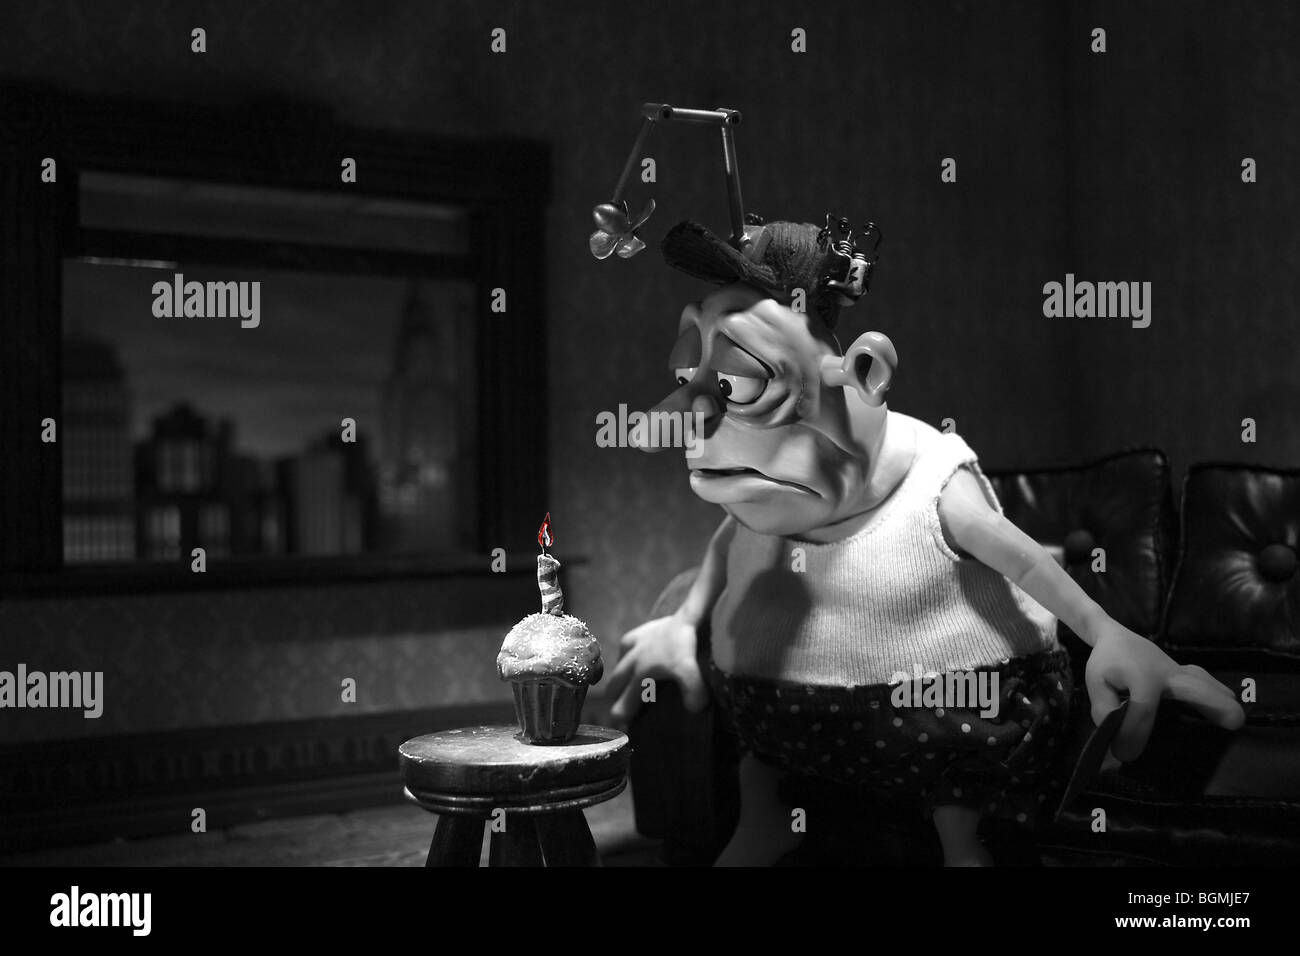 Mary And Max Year 2009 Director Adam Elliot Animation Stock Photo Alamy